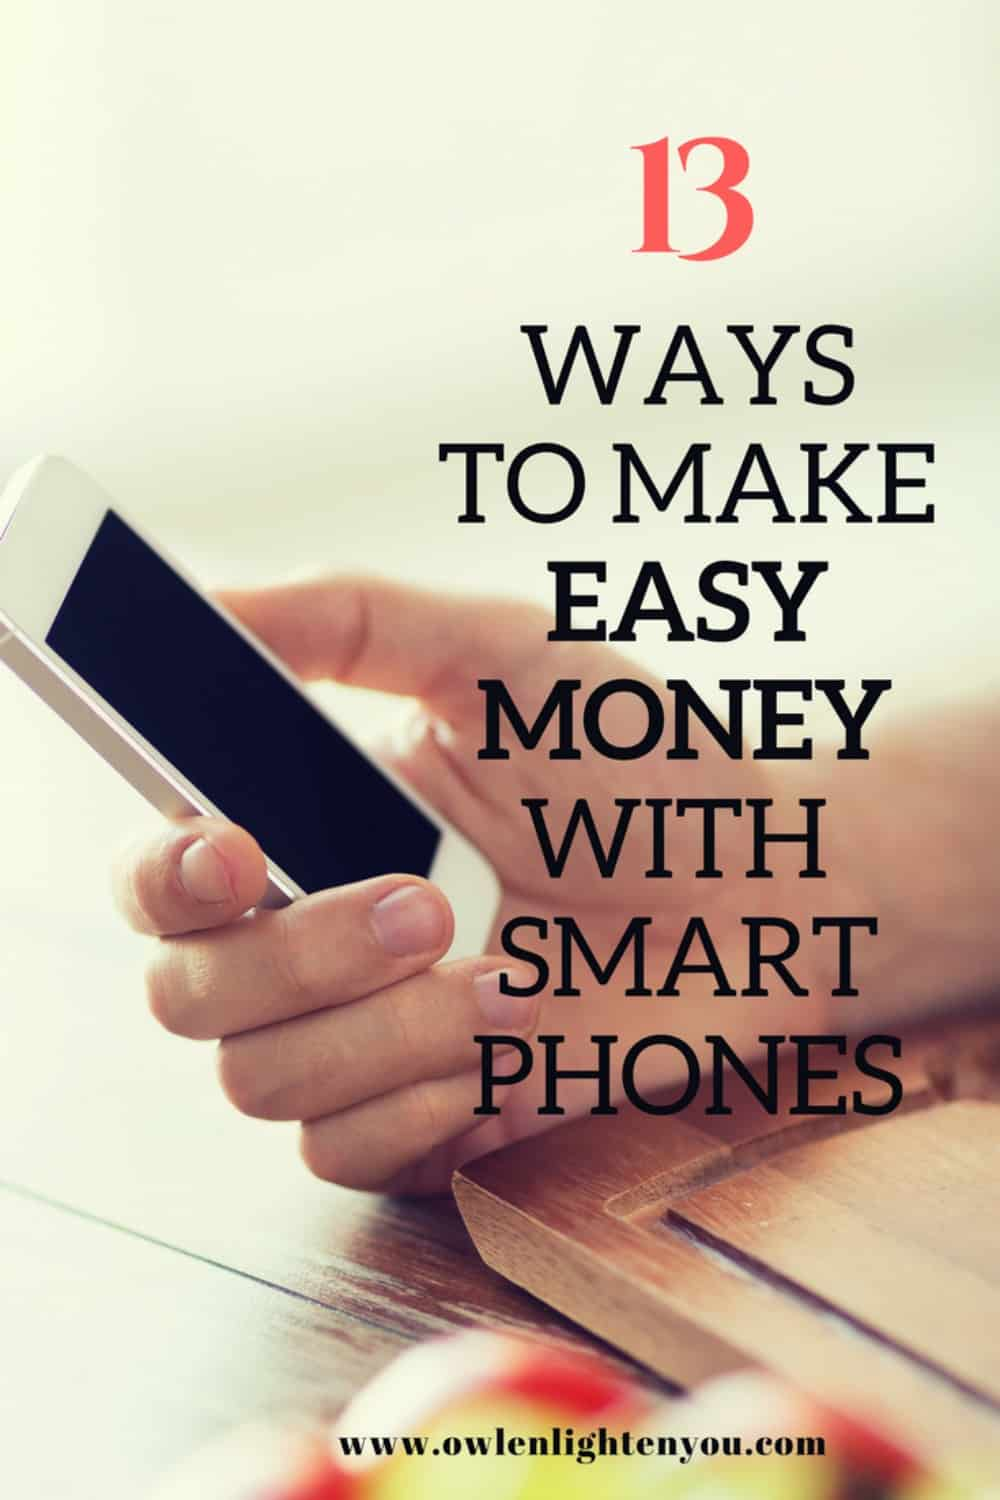 13 Easy Ways To Make Money With Your Smart Phone- OwlEnlightenYou.com #makeextramoney #makemoneyonline #makemoneywithsmartphone #howtomakesidemoney